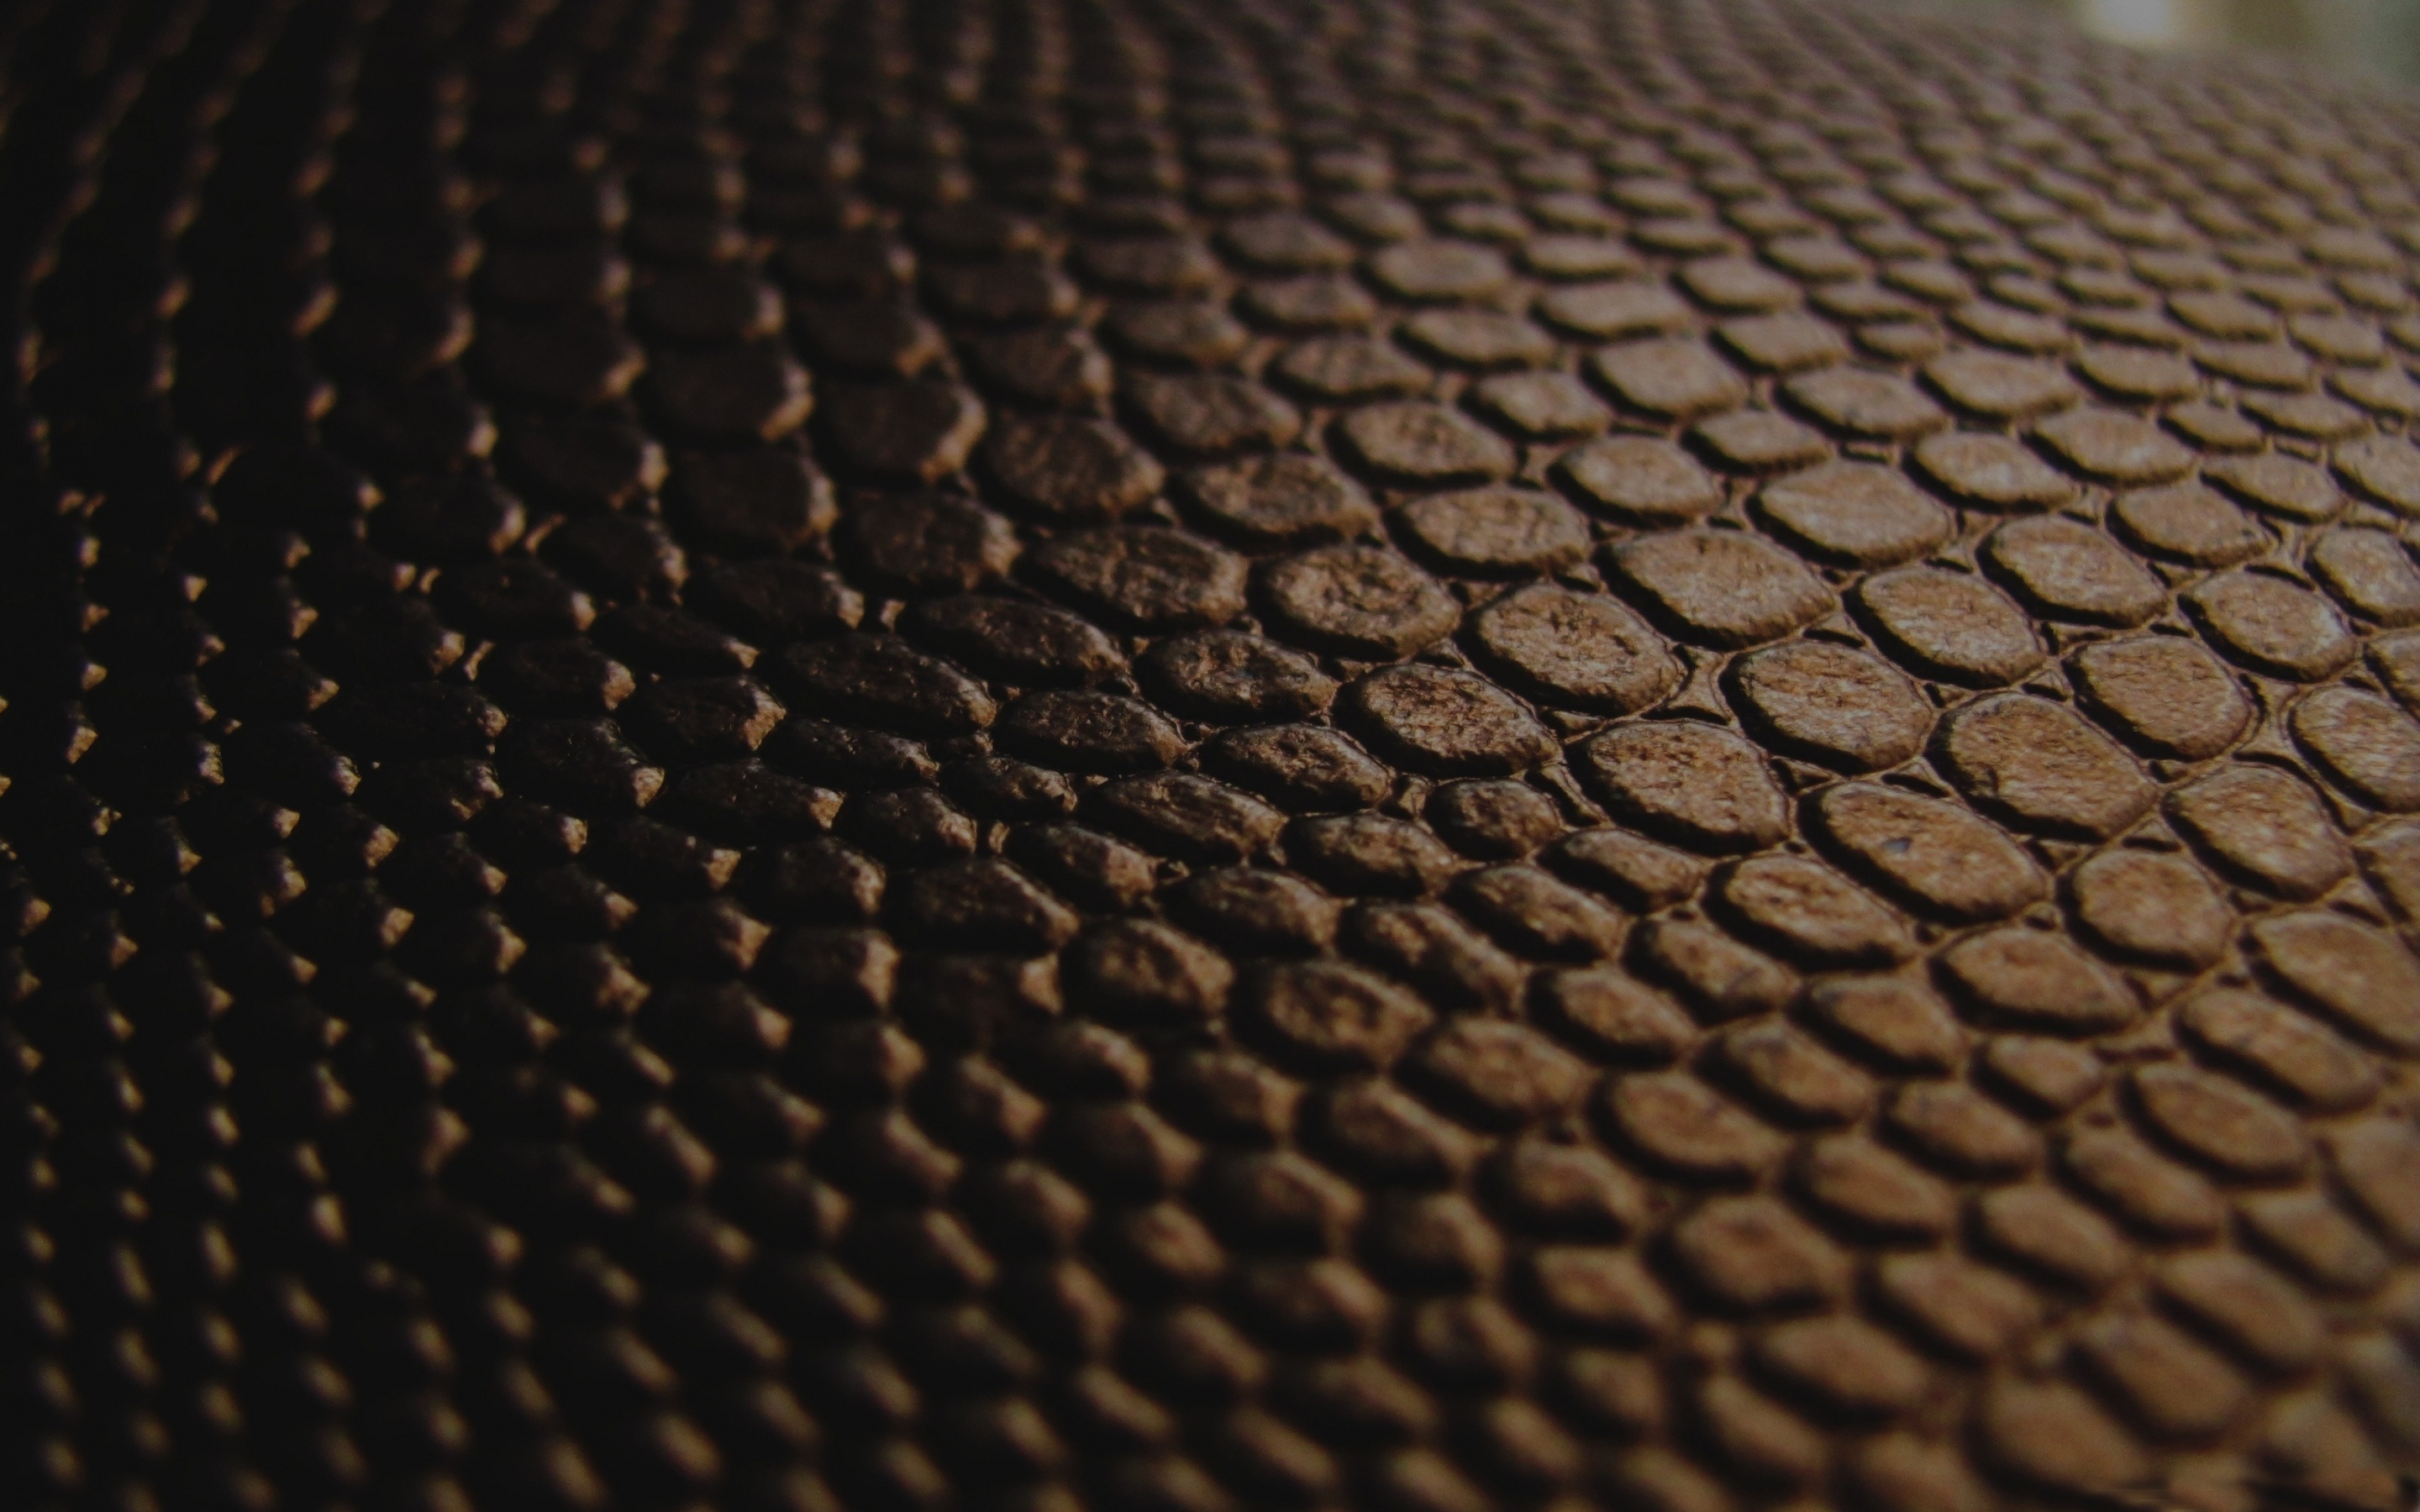 wallpapers and texture on - photo #28